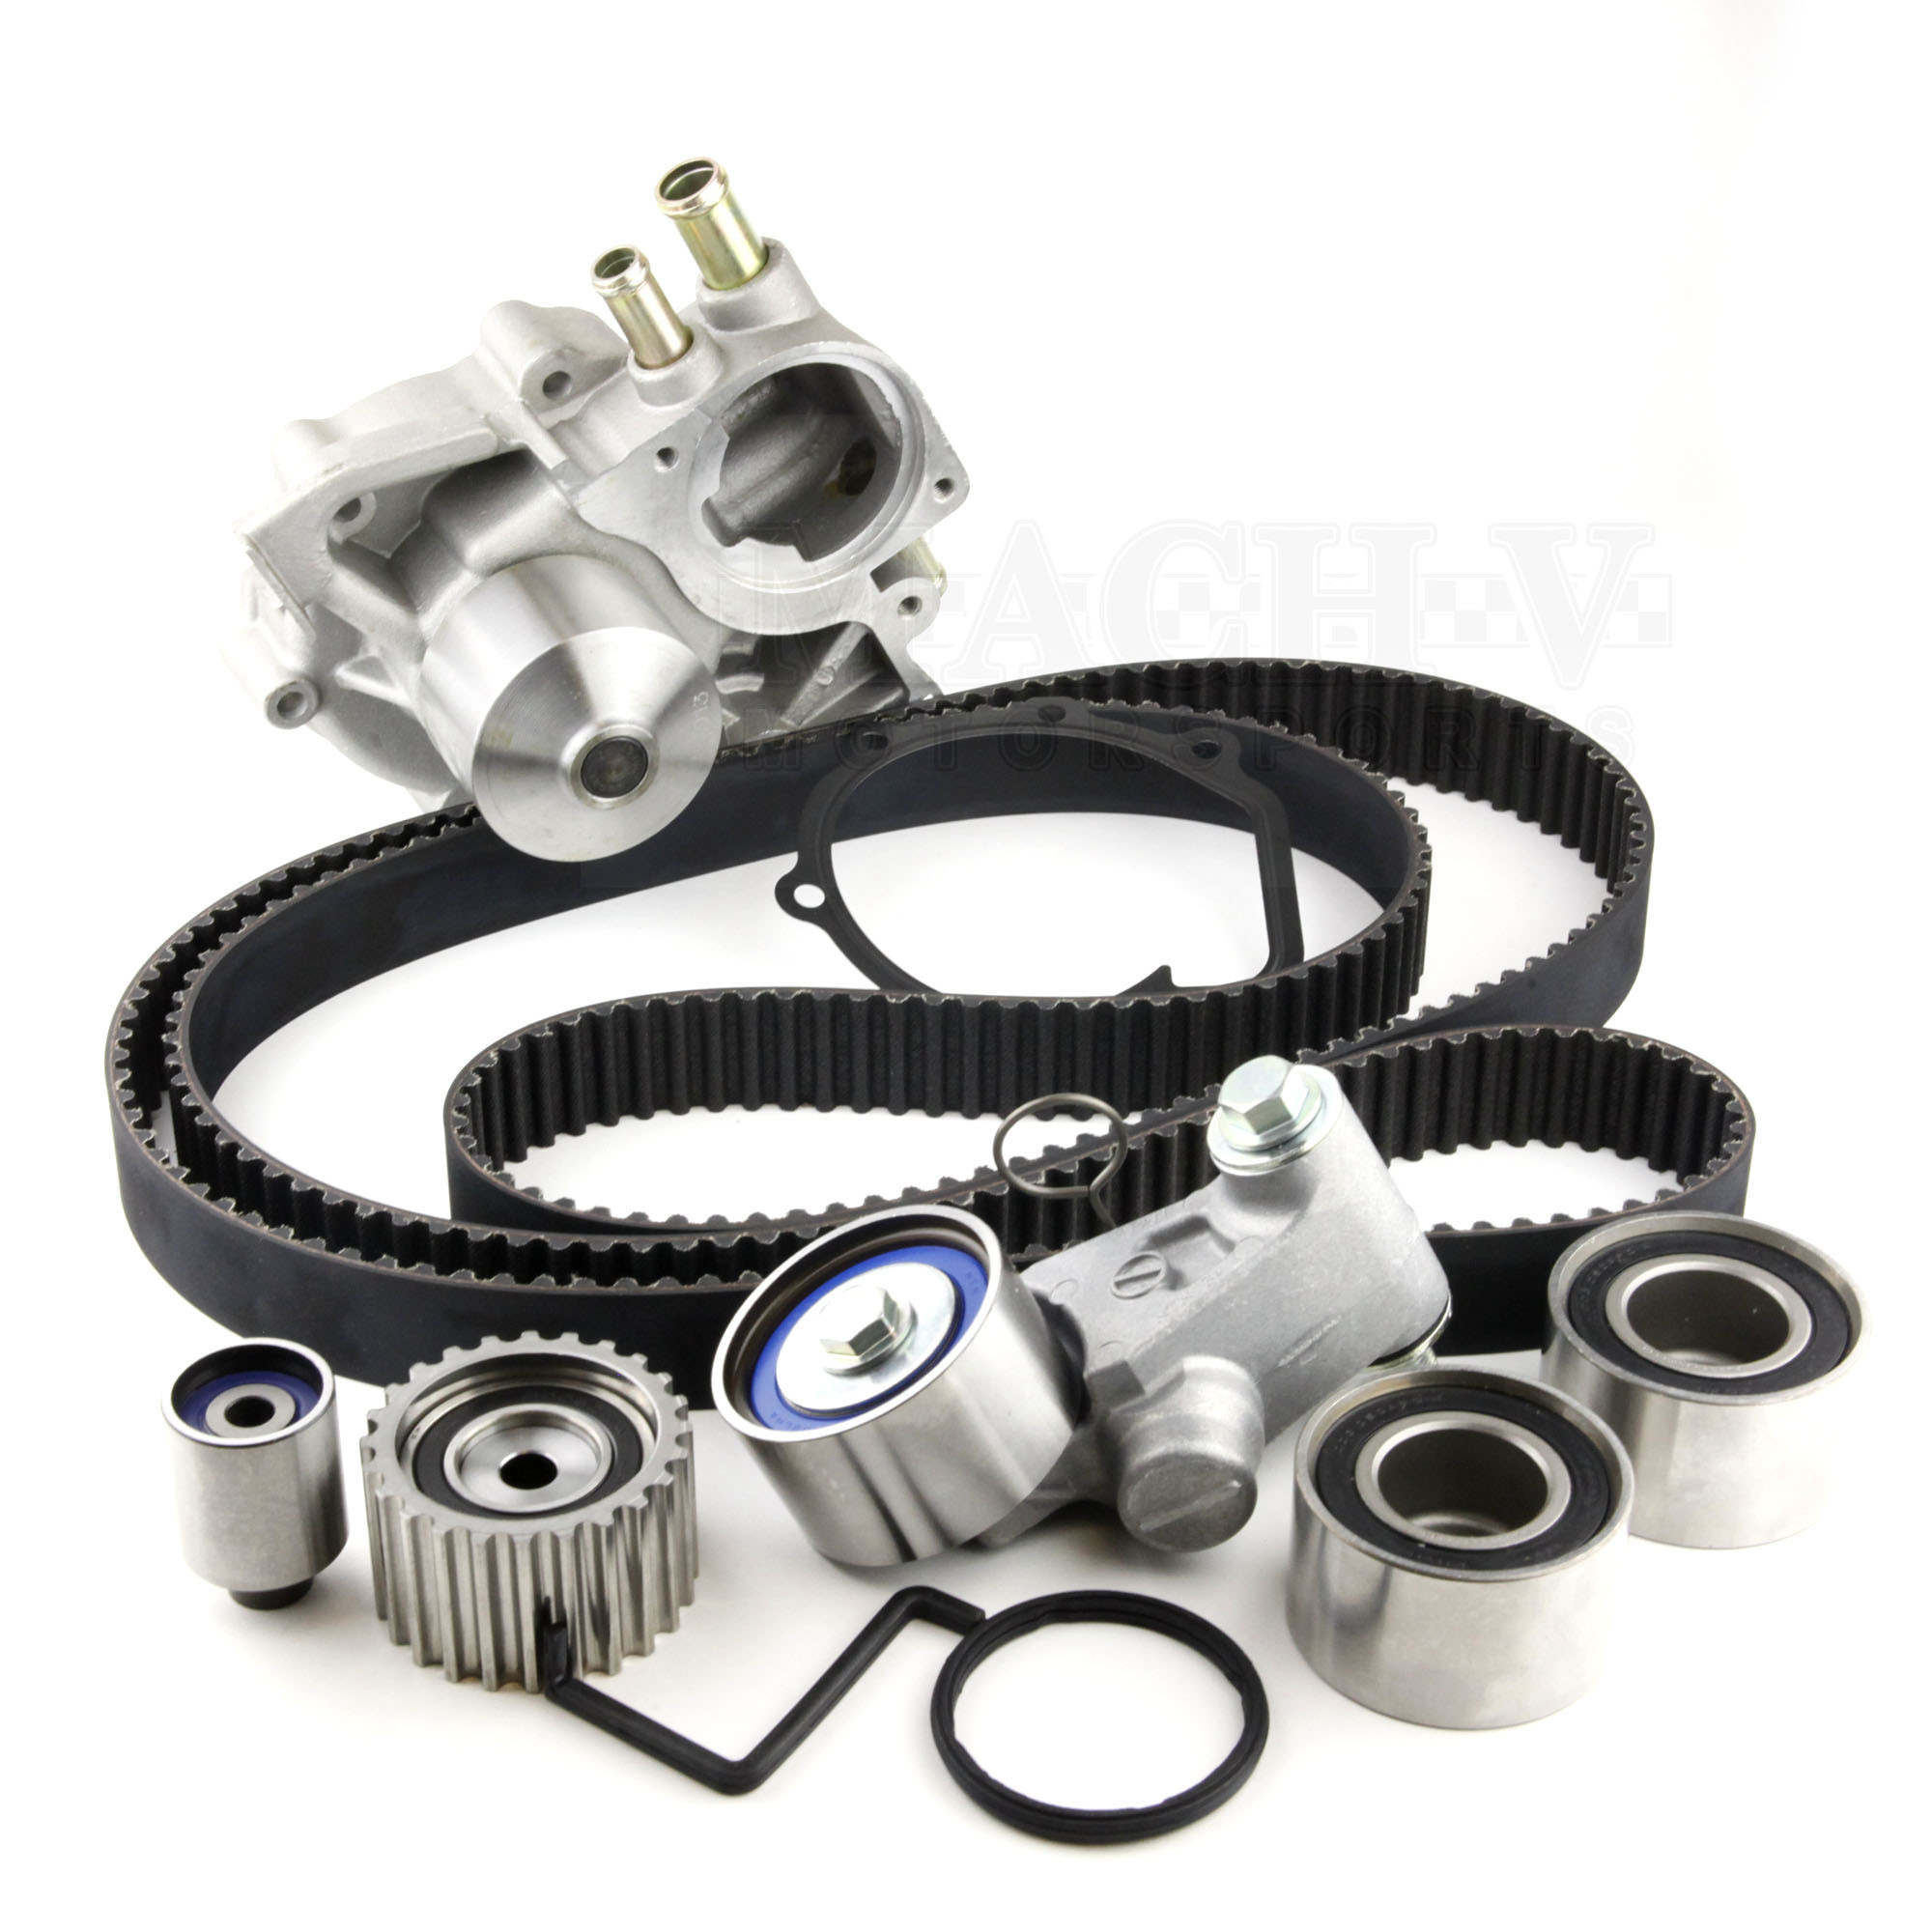 Timing belt kit with water pump retina 79d0615c d590 468d be36 c073165eb2b0 Correia de distribuição: O que precisa saber